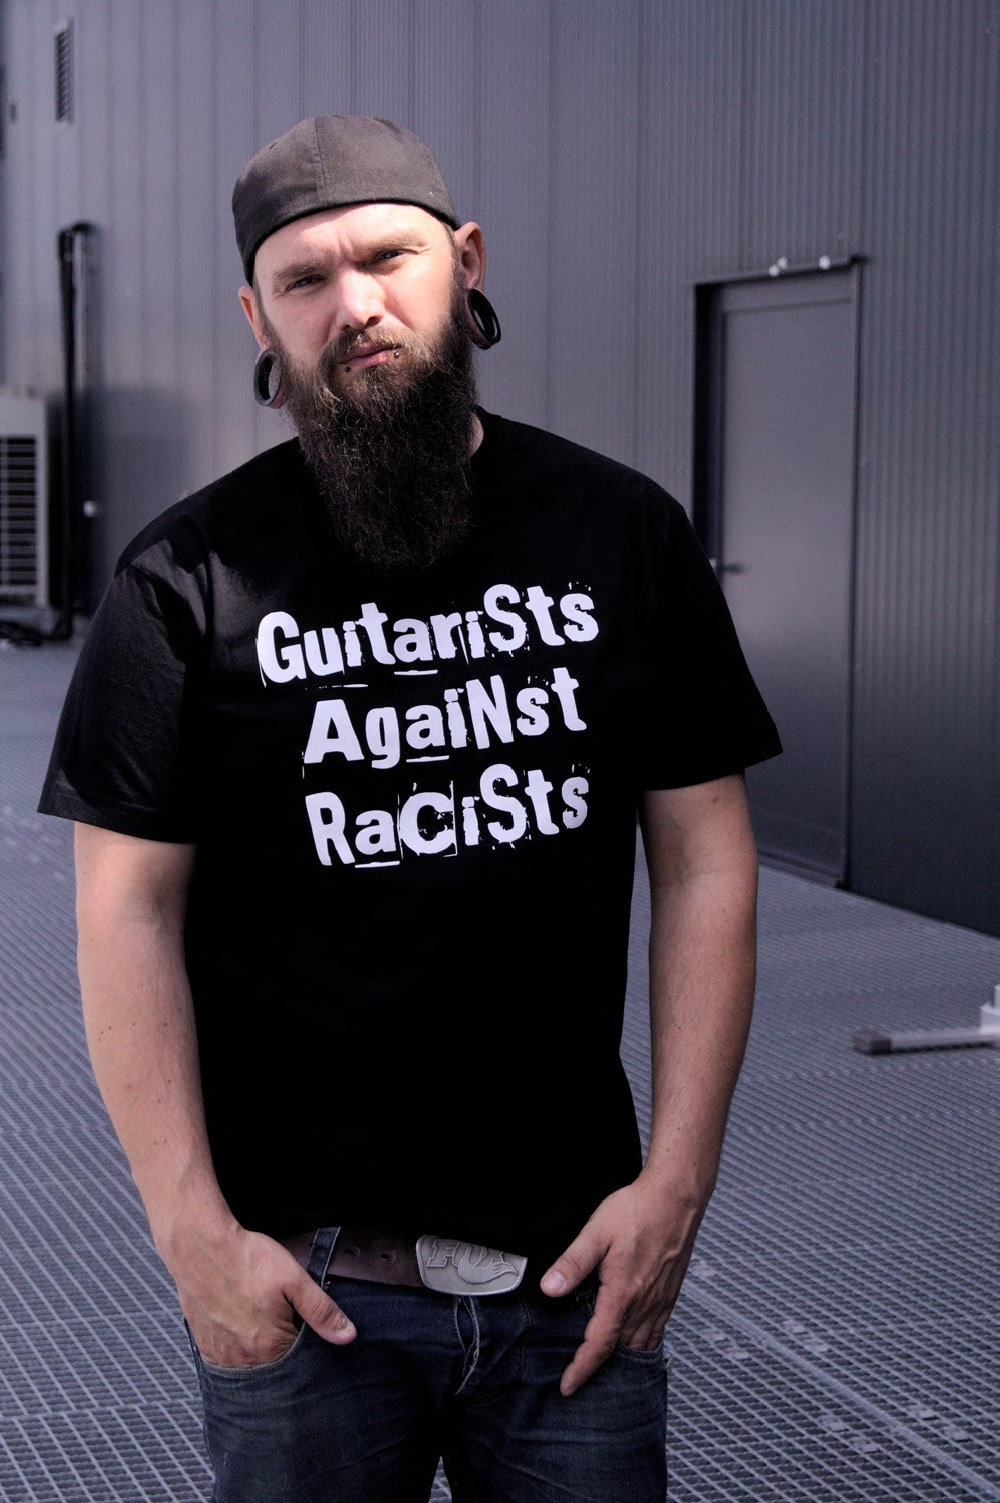 Guitarists against Racists1